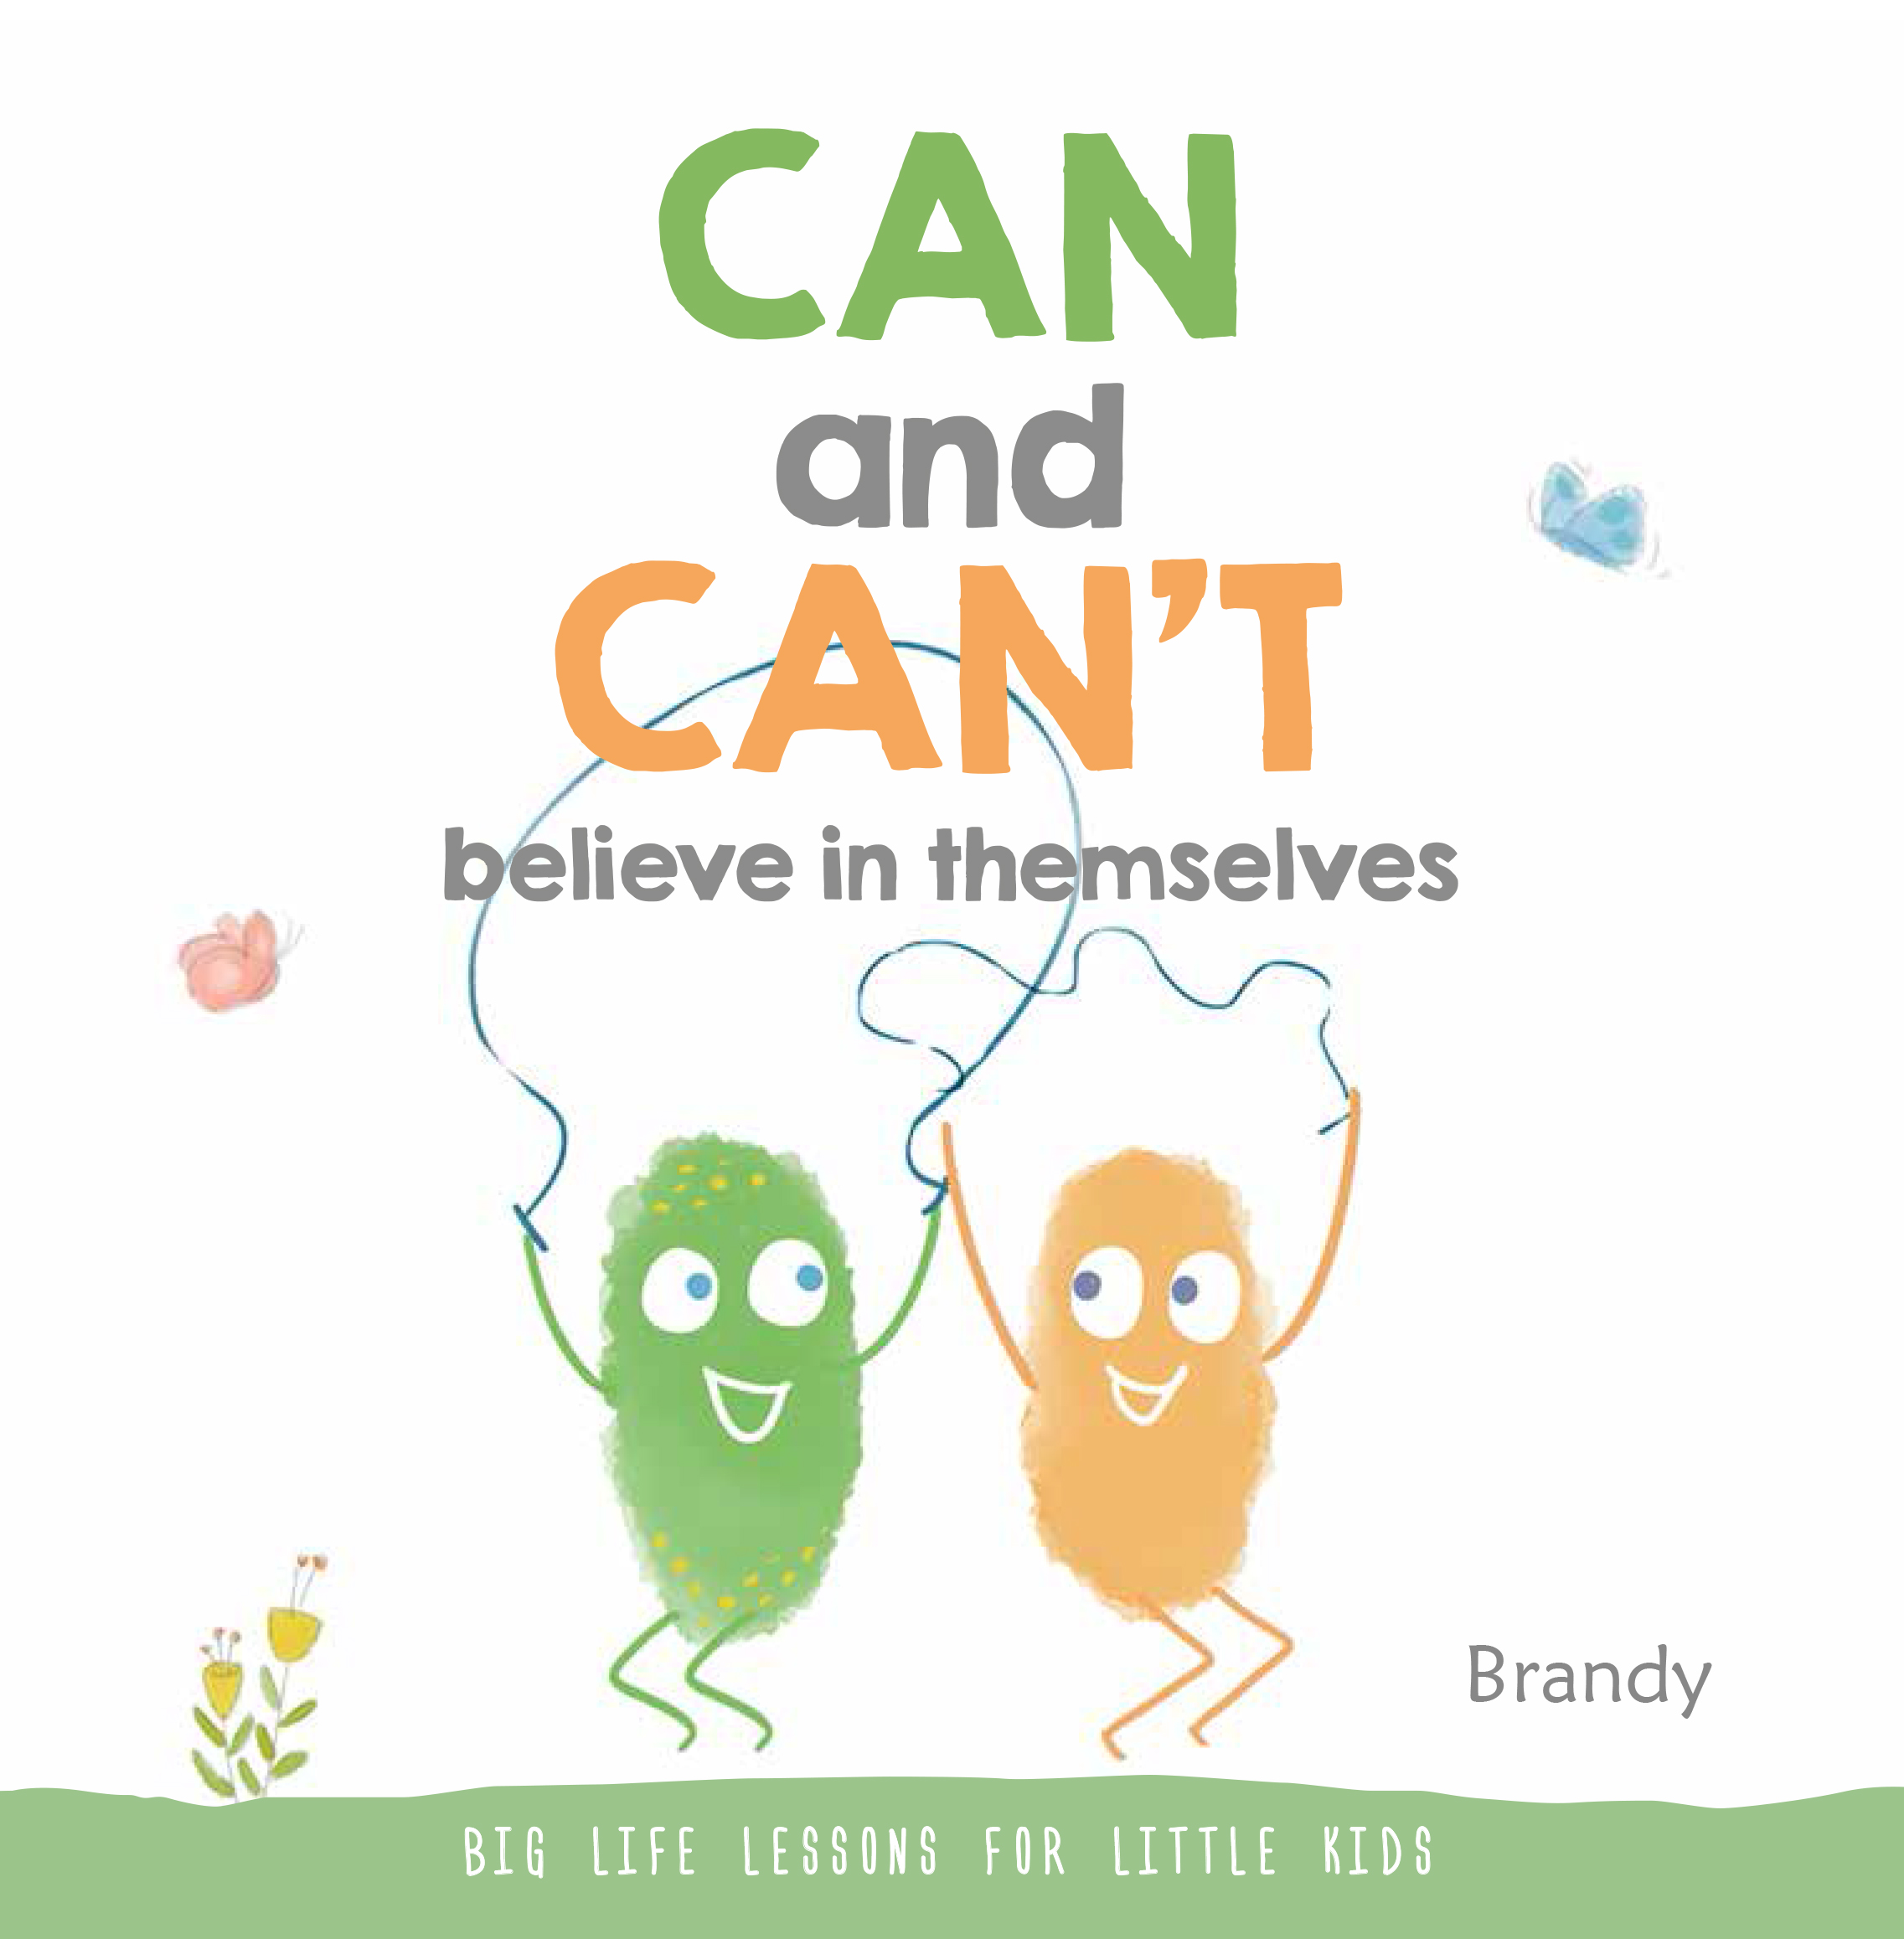 CAN AND CAN'T BELIEVE IN THEMSELVES